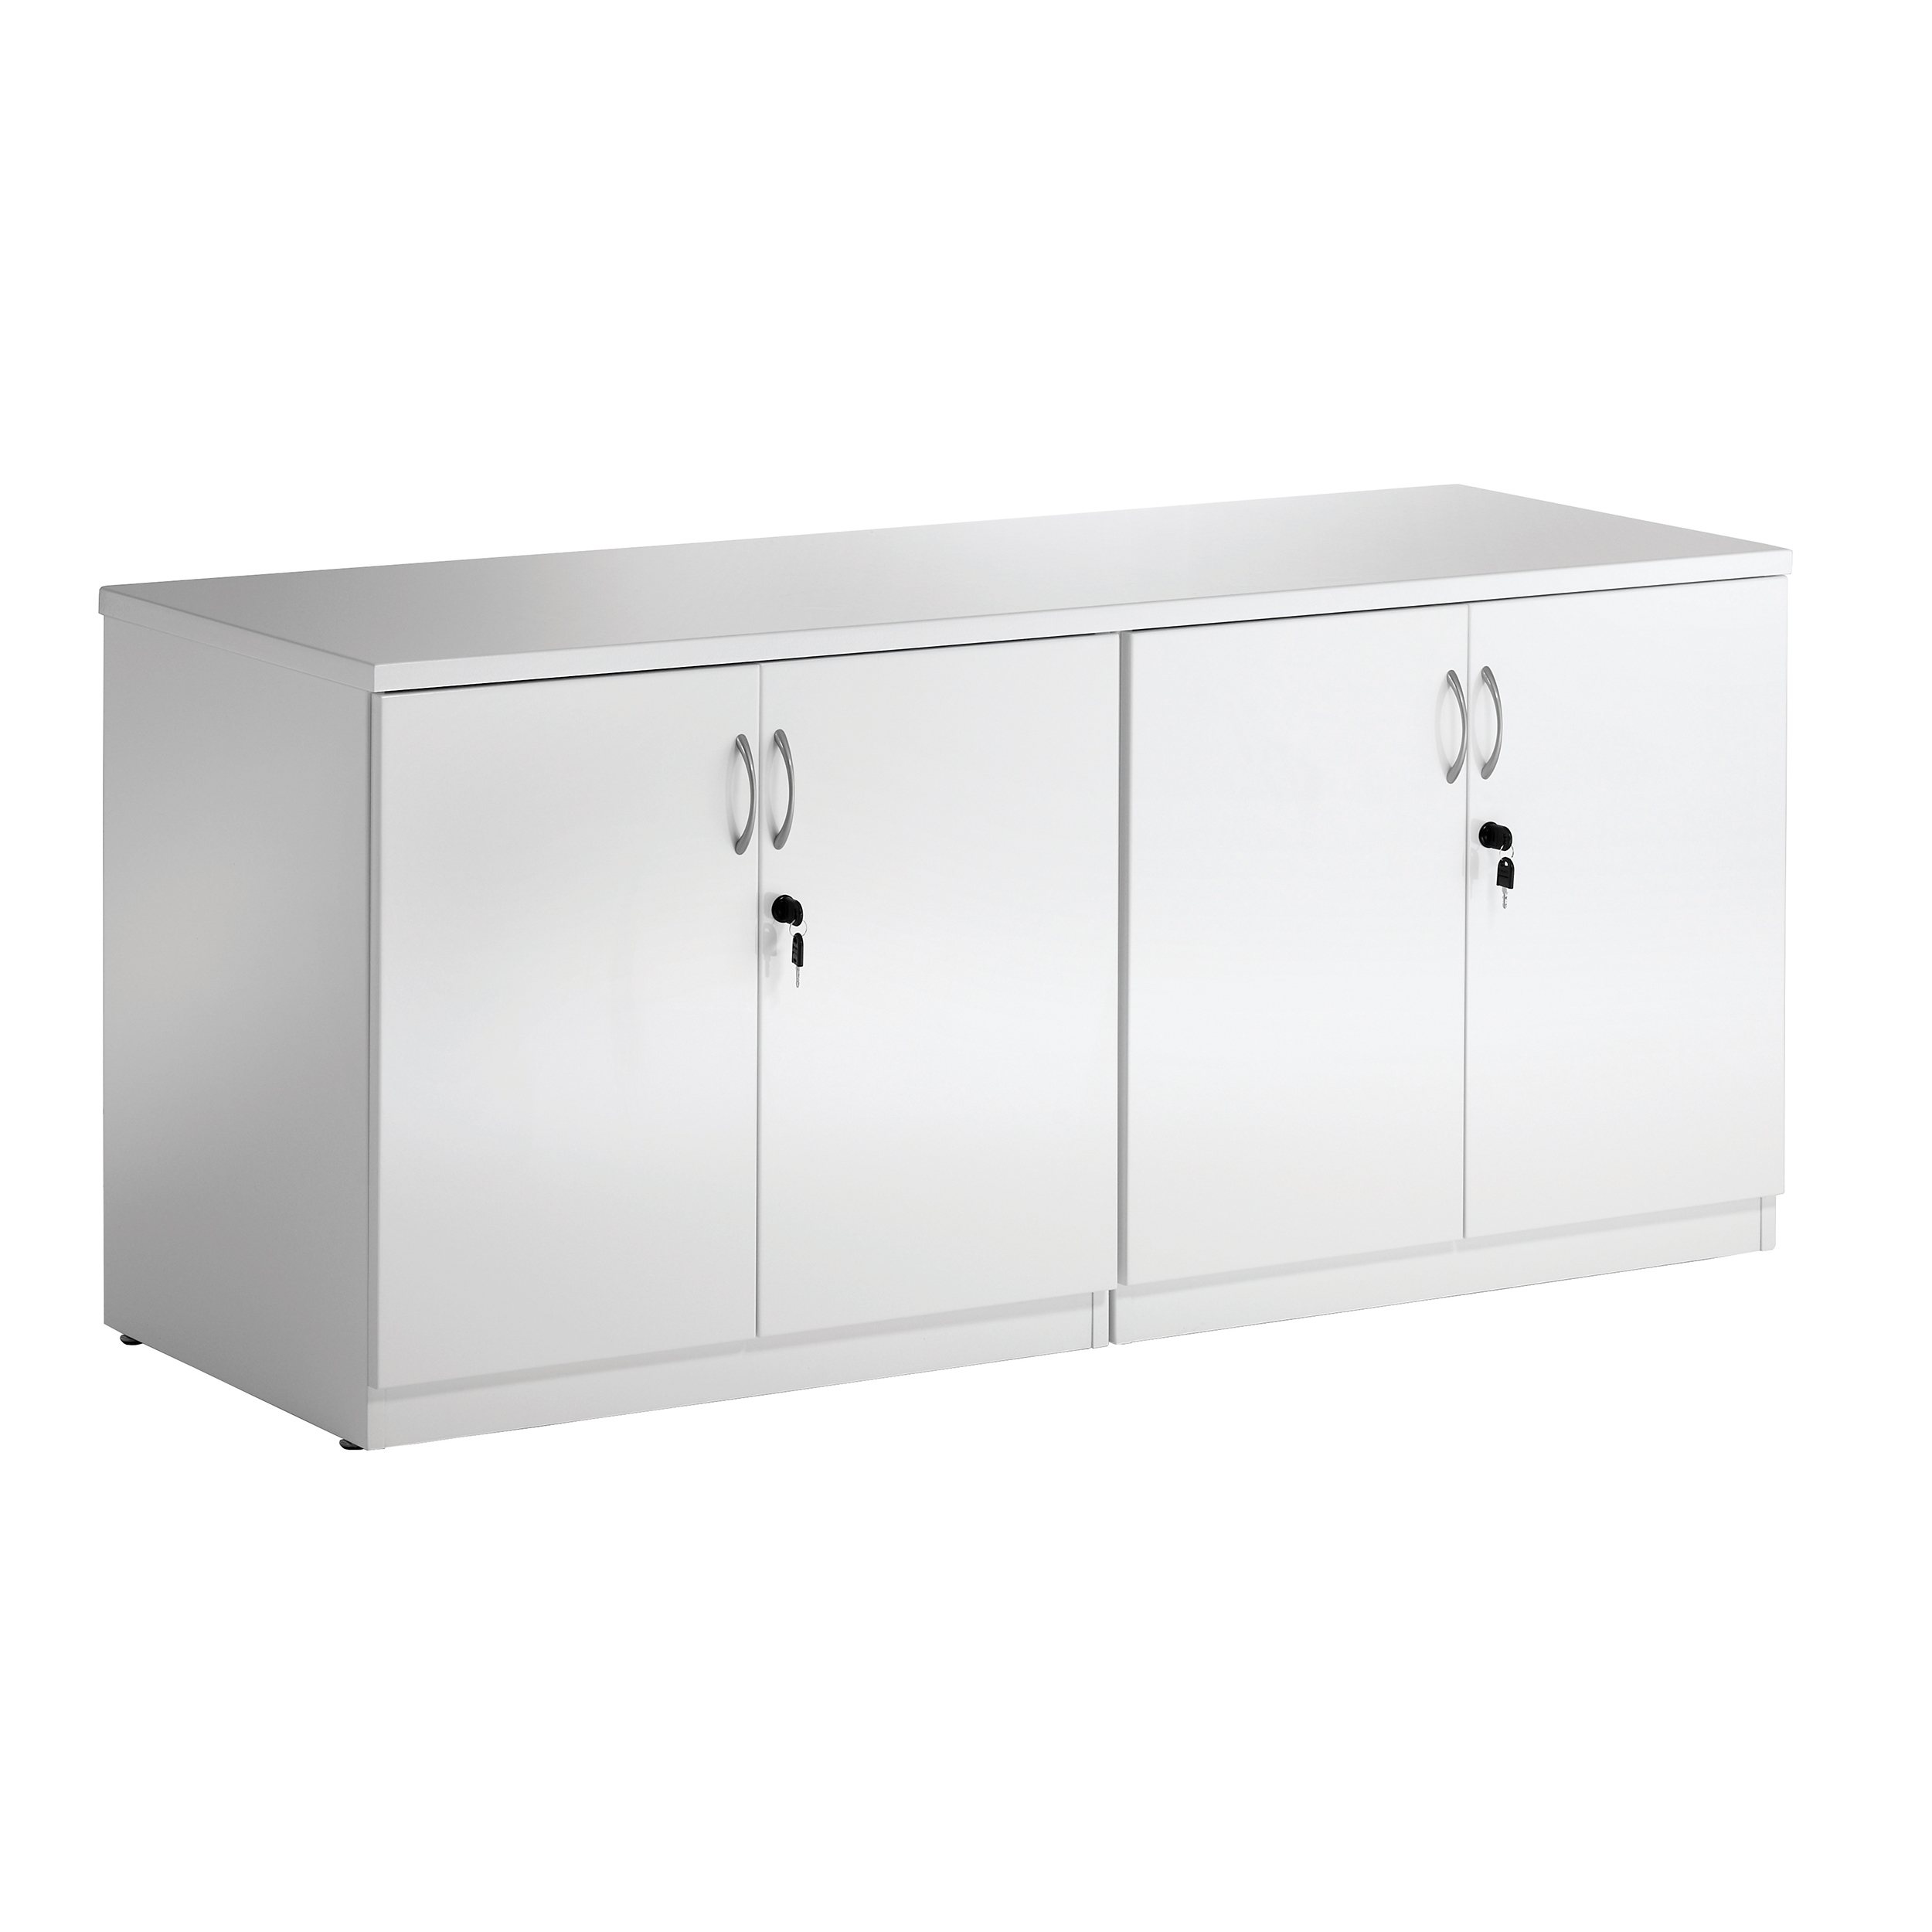 Trexus Credenza Cupboard High Gloss 1600x600x720mm White Ref I000908